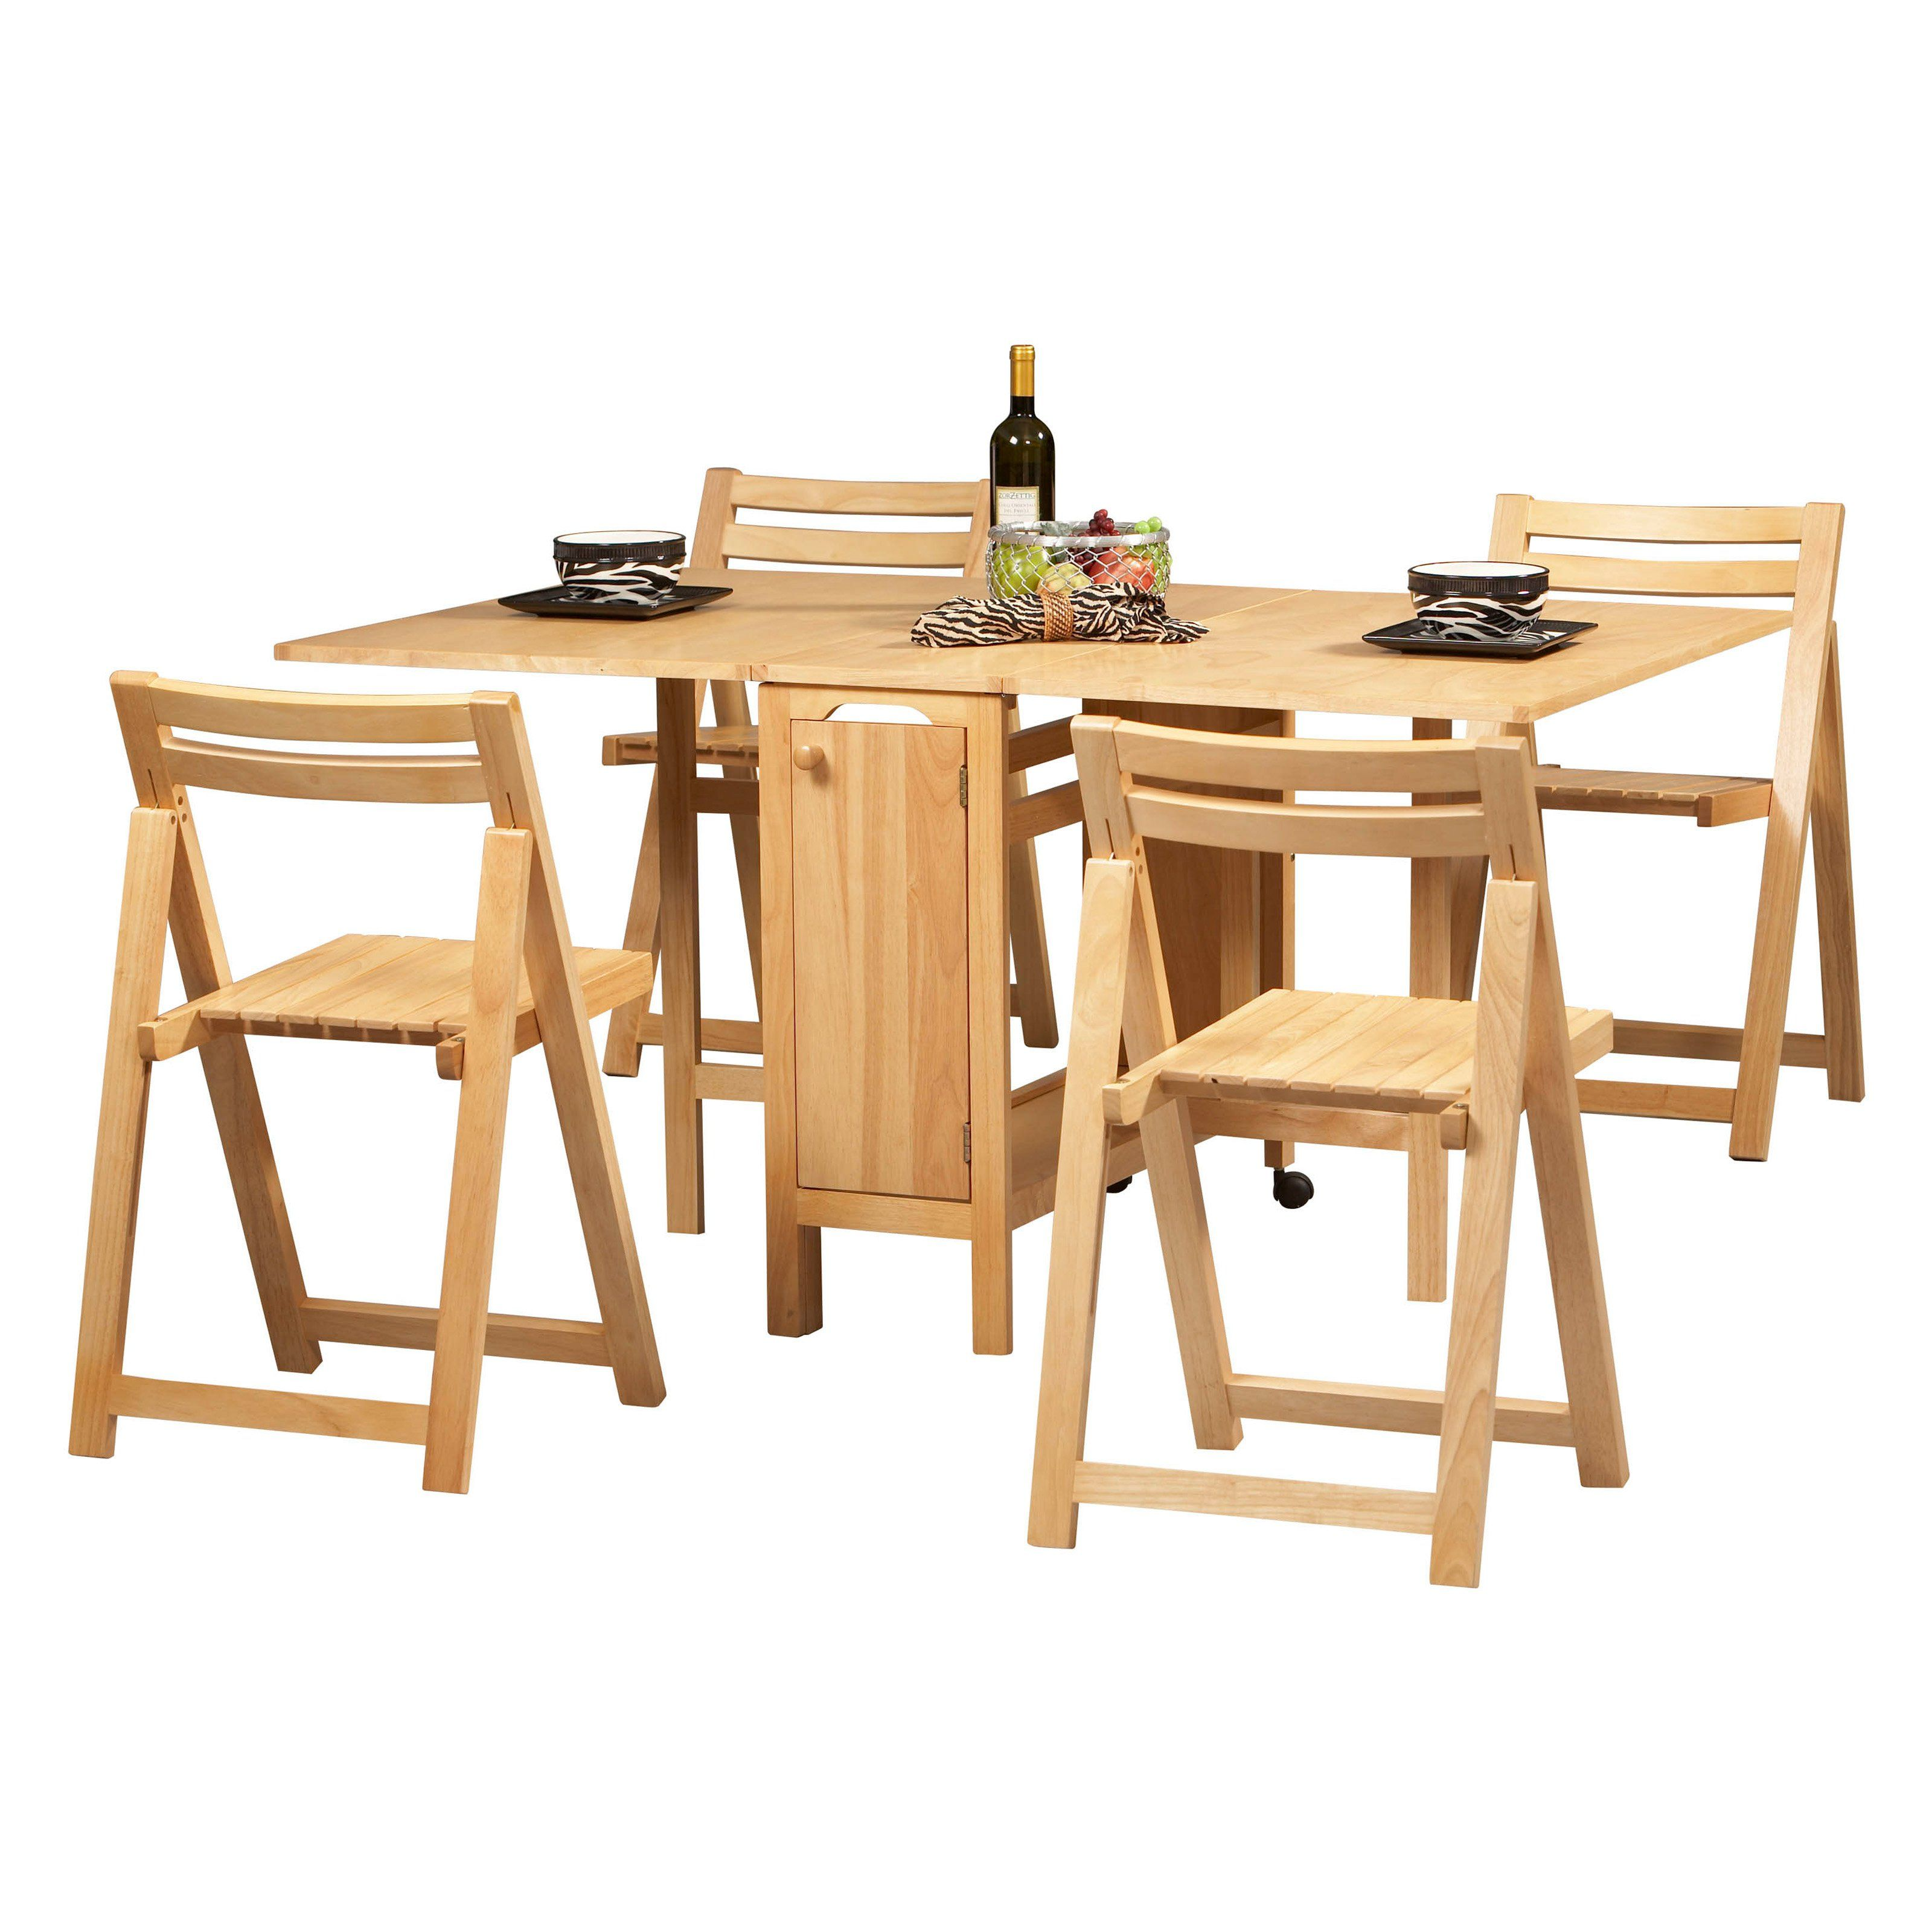 How The Folding Table With Chairs Became A Modern Phenomenon In